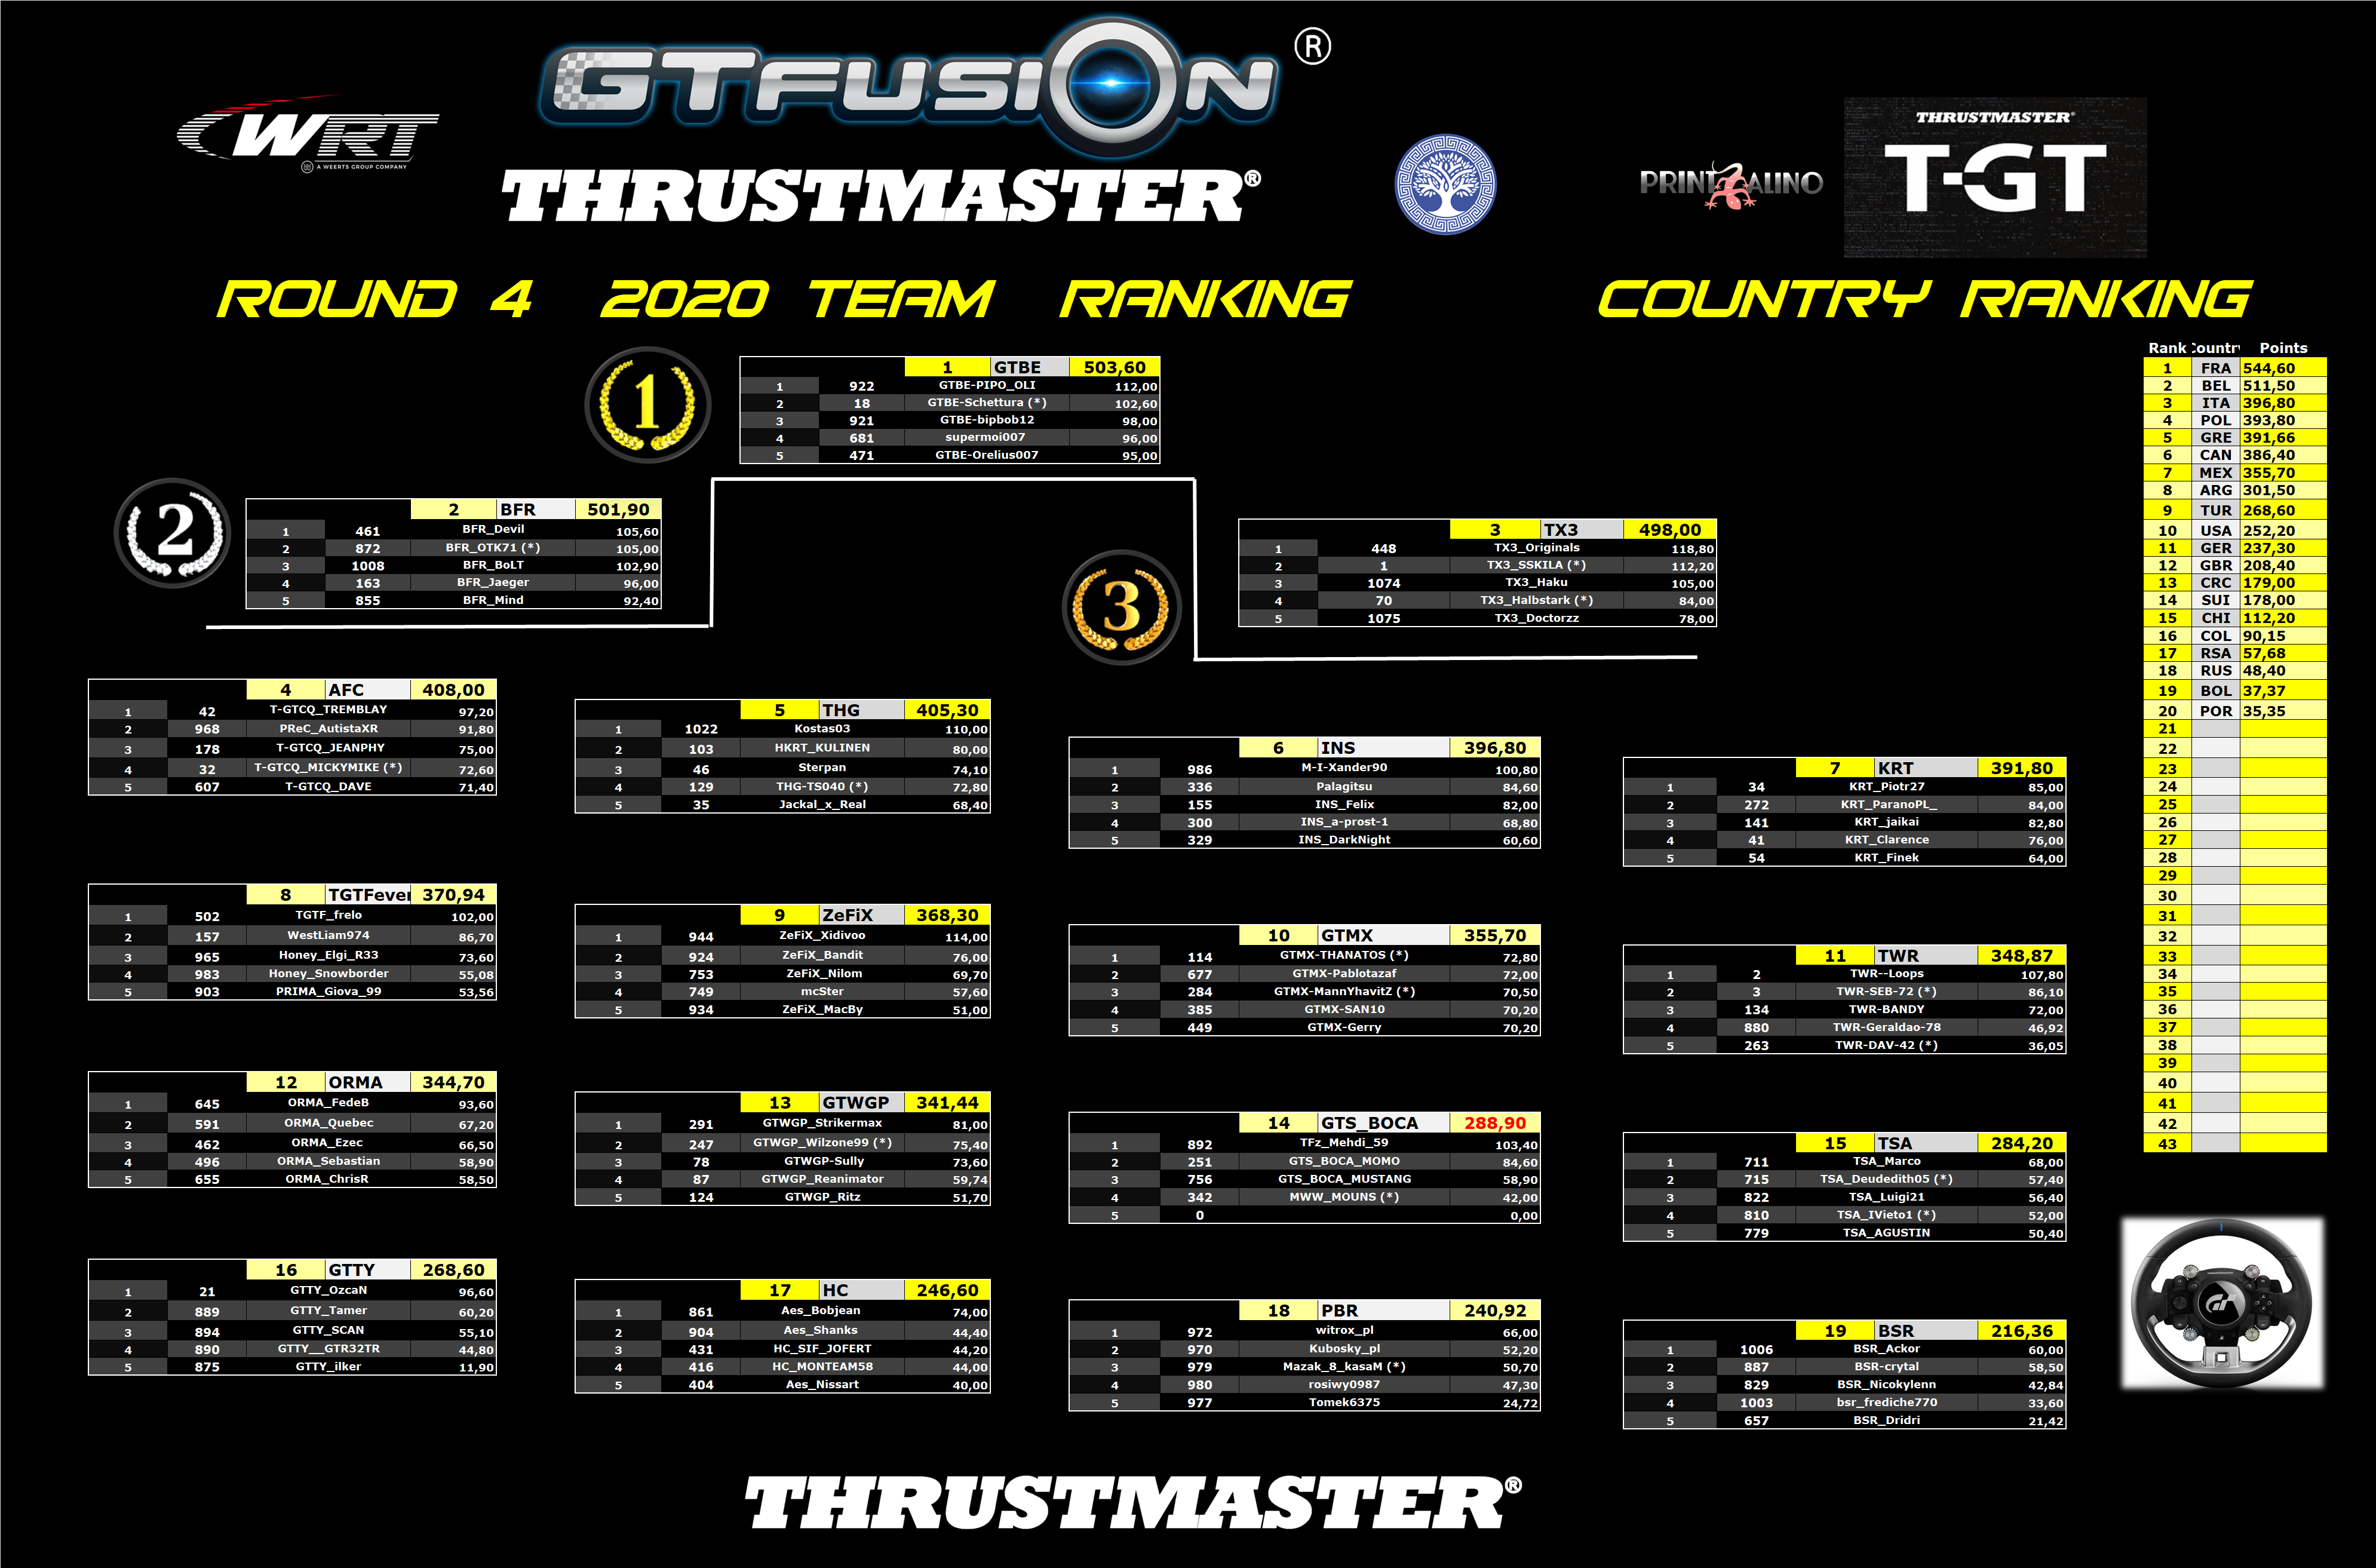 GTfusion GTSport World Championship Round 4 2020 Thrustmaster Team Results WRT